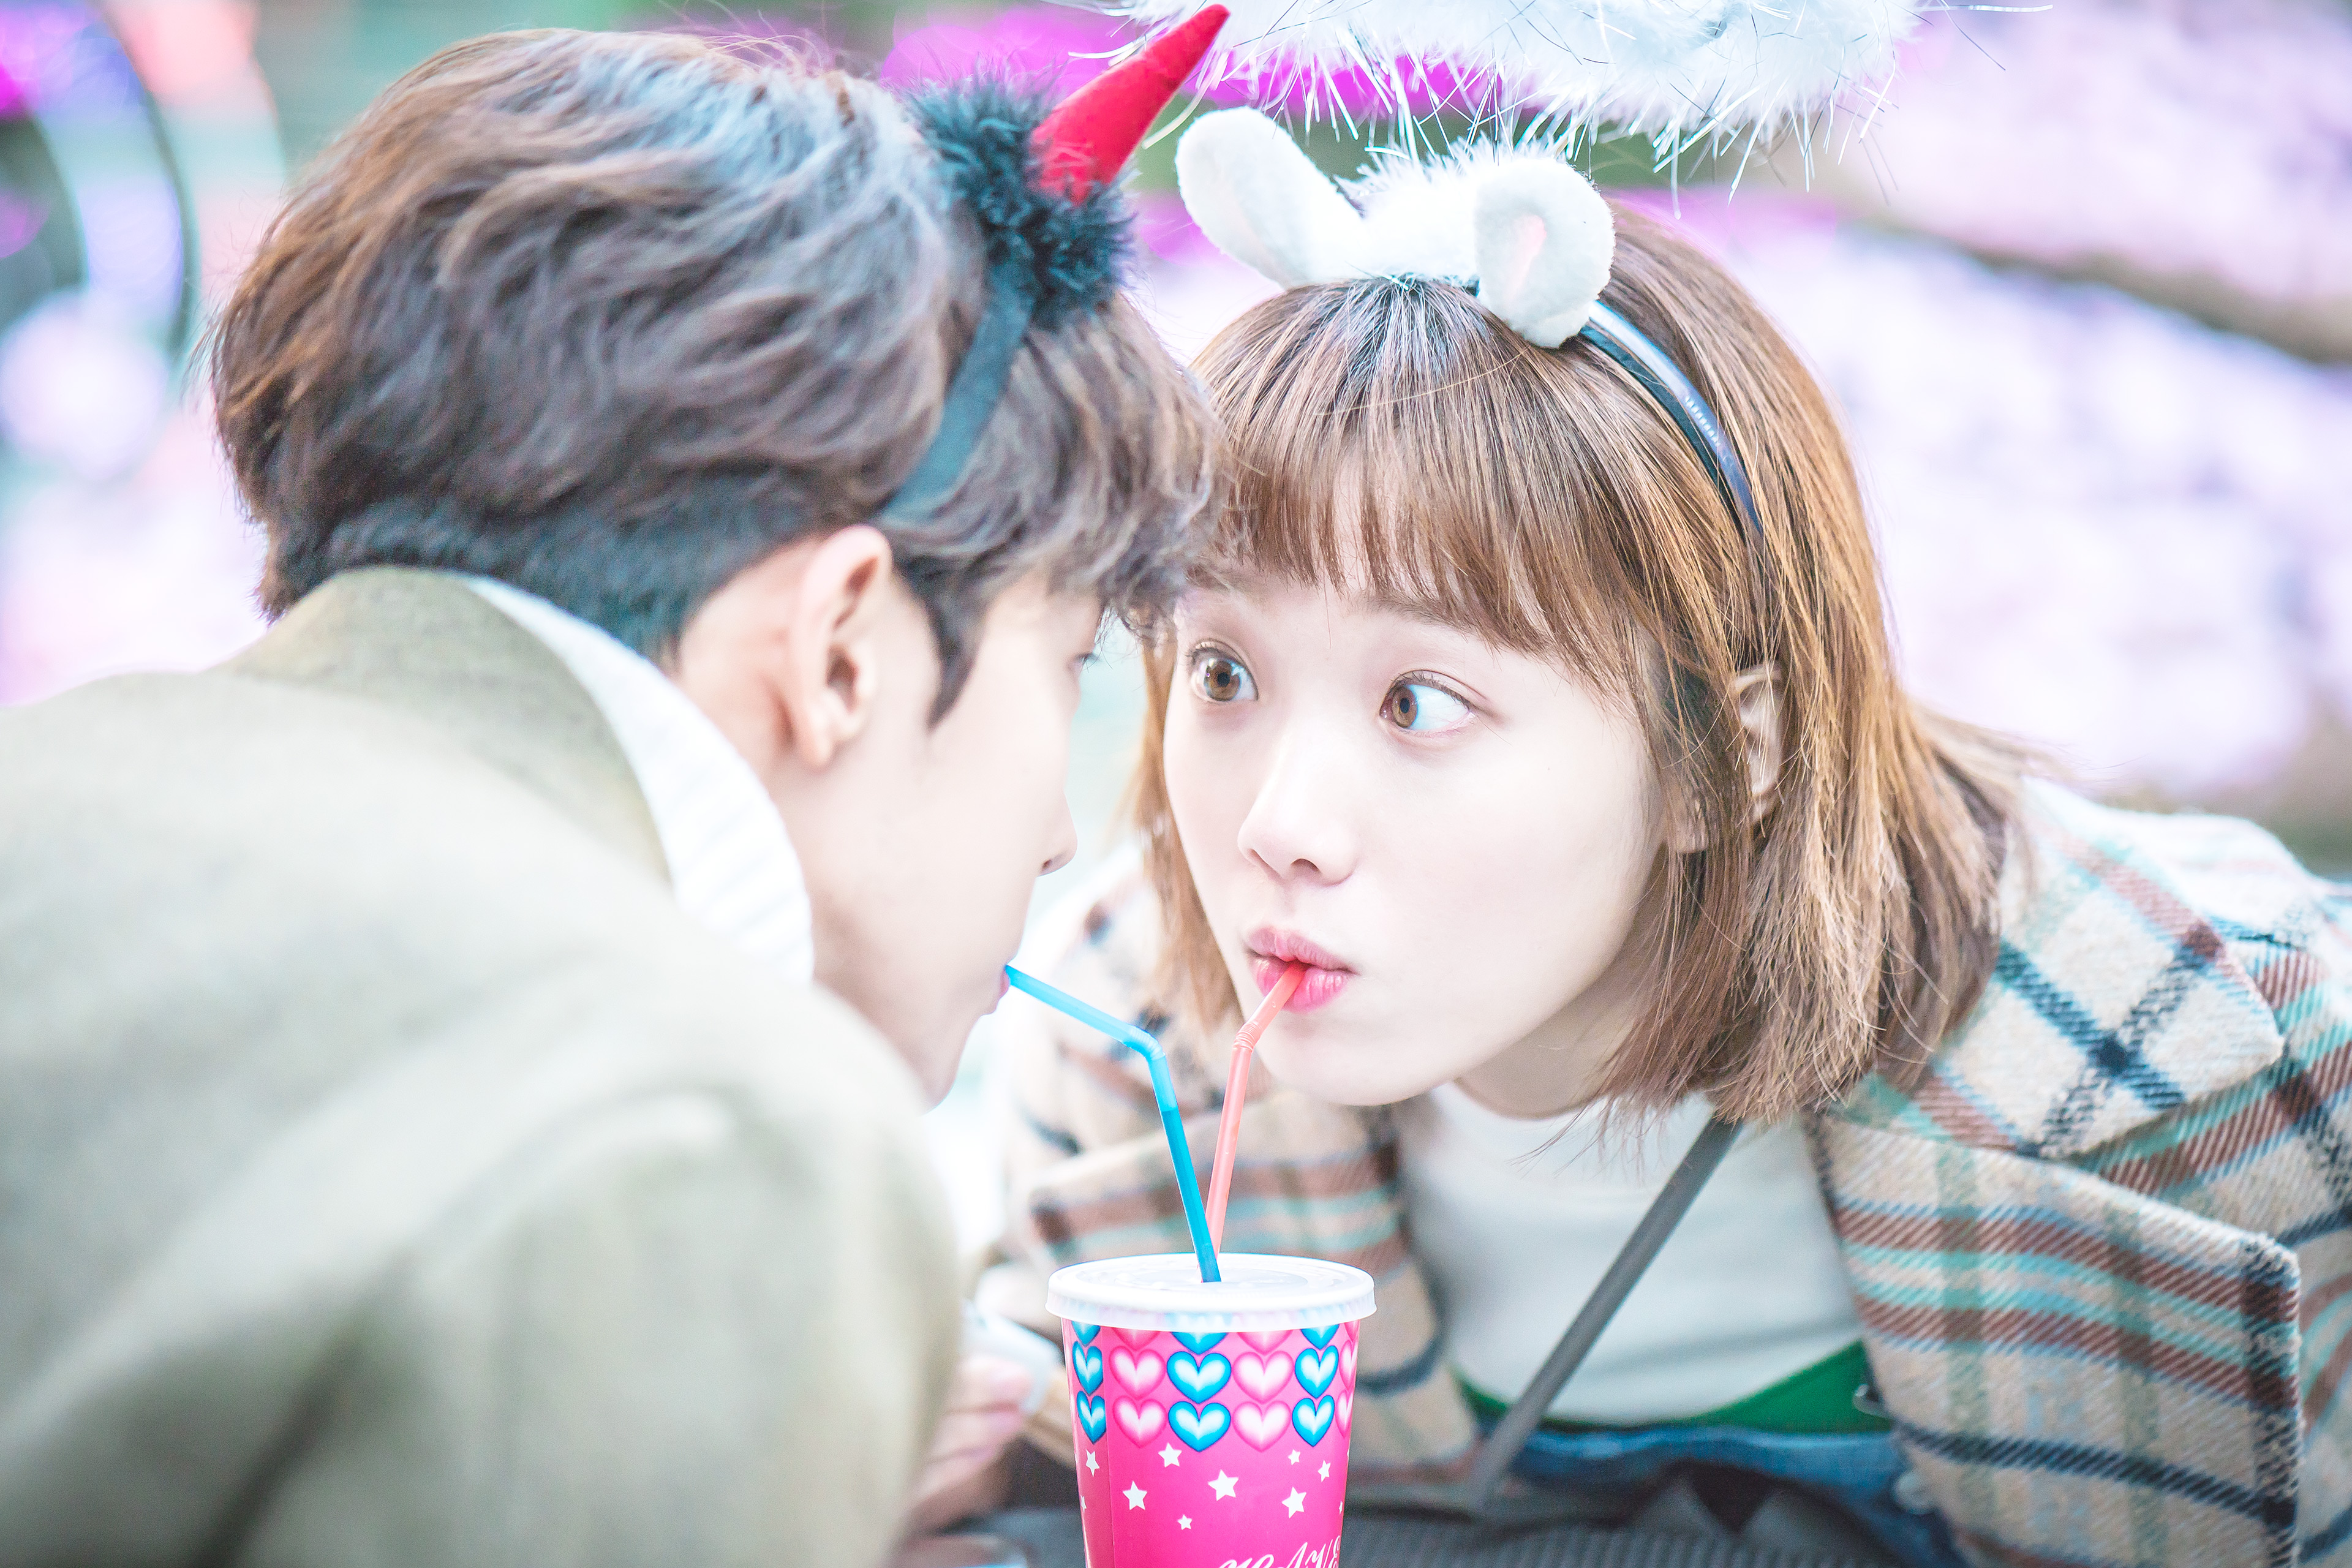 Lee Sung Kyung Talks About Her Innocent First Love Experience